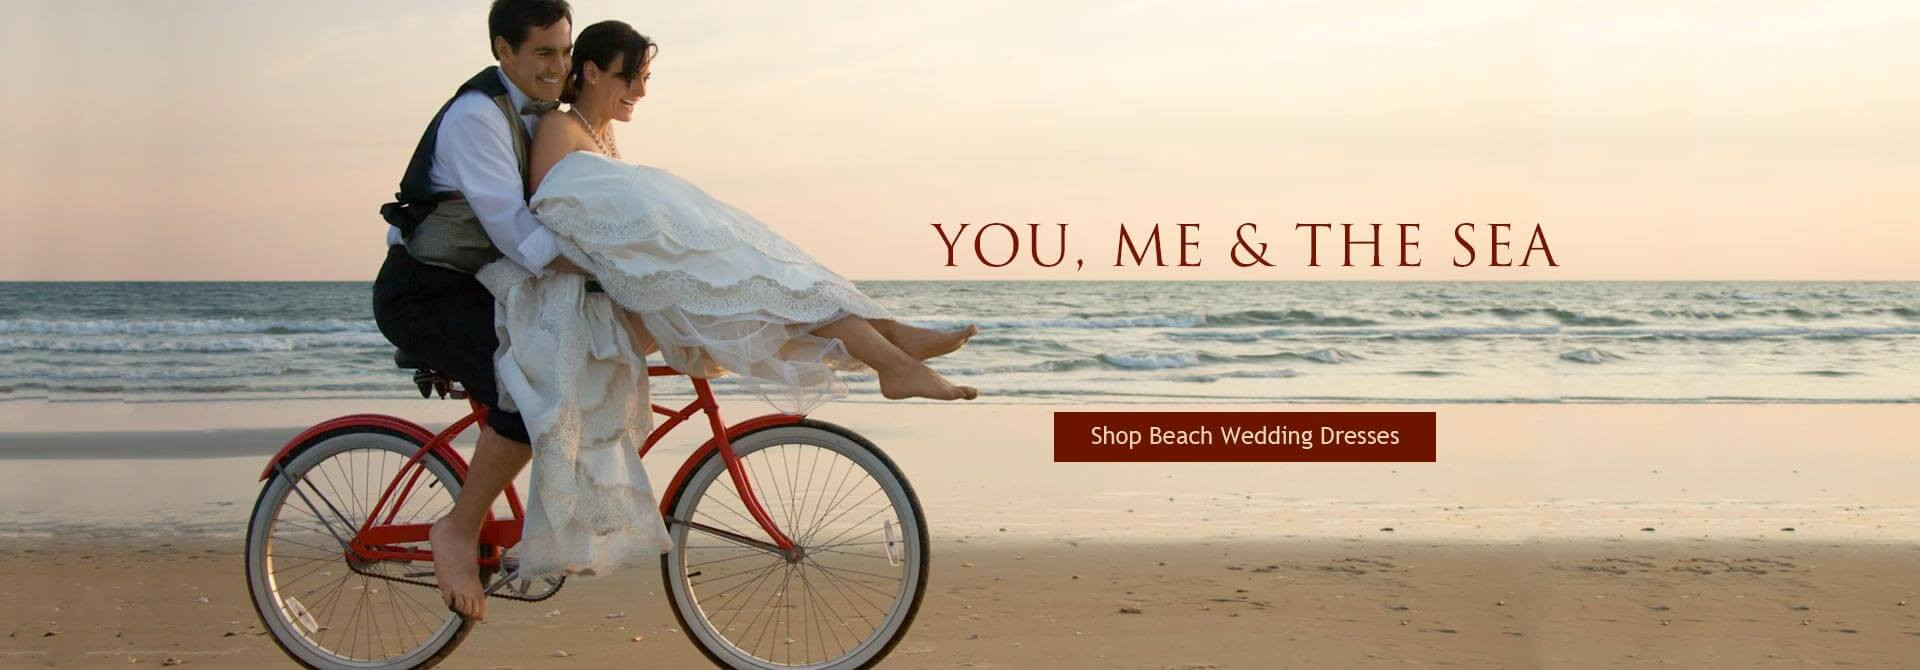 60% Off Beach Wedding Dresses